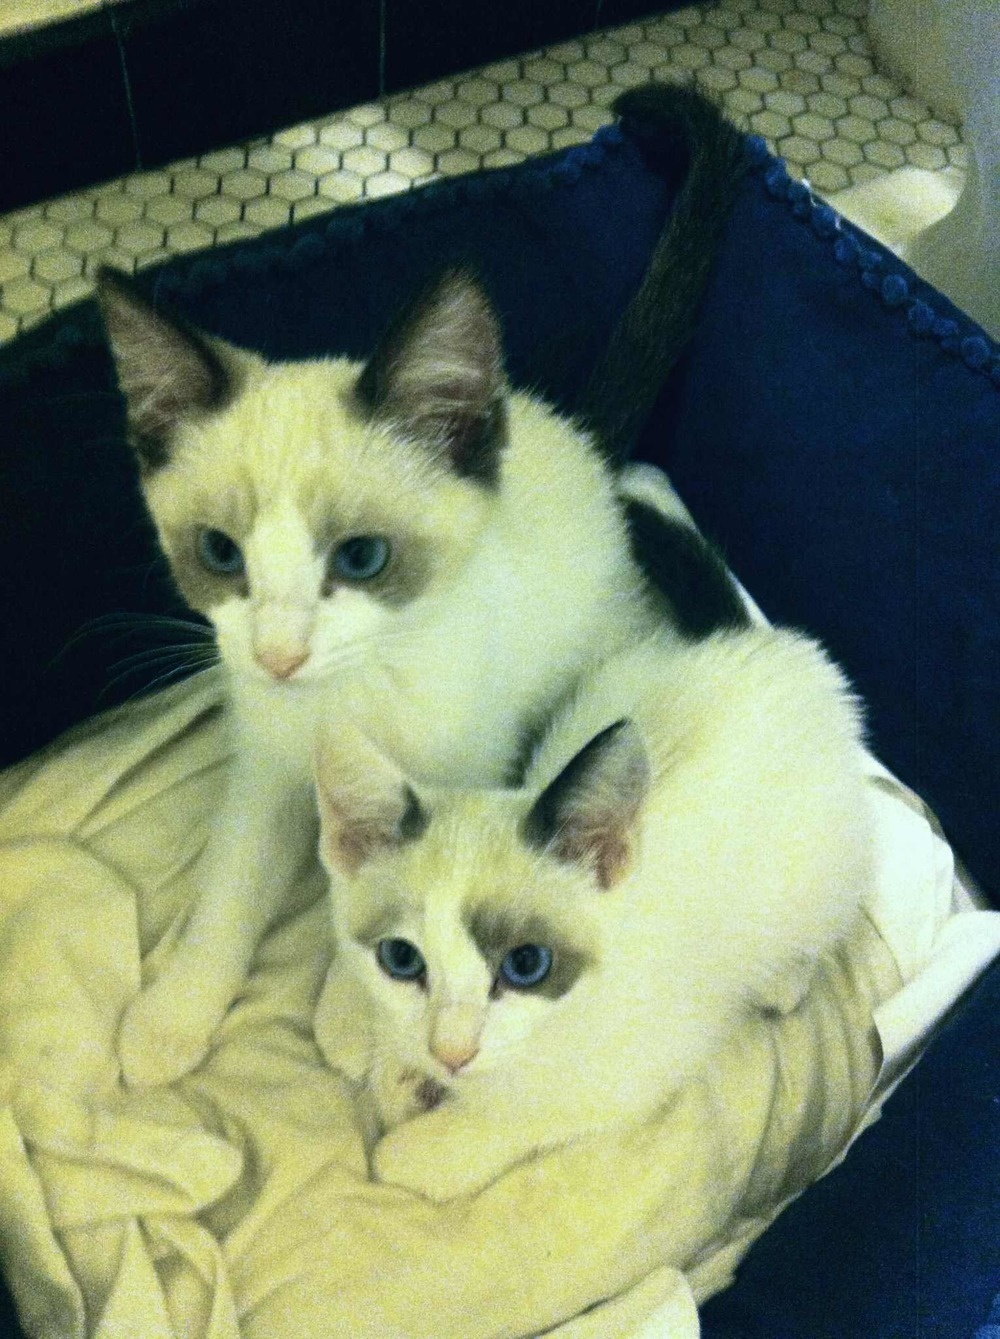 An imgur user has suitably dubbed these two cats Albus and Minerva.